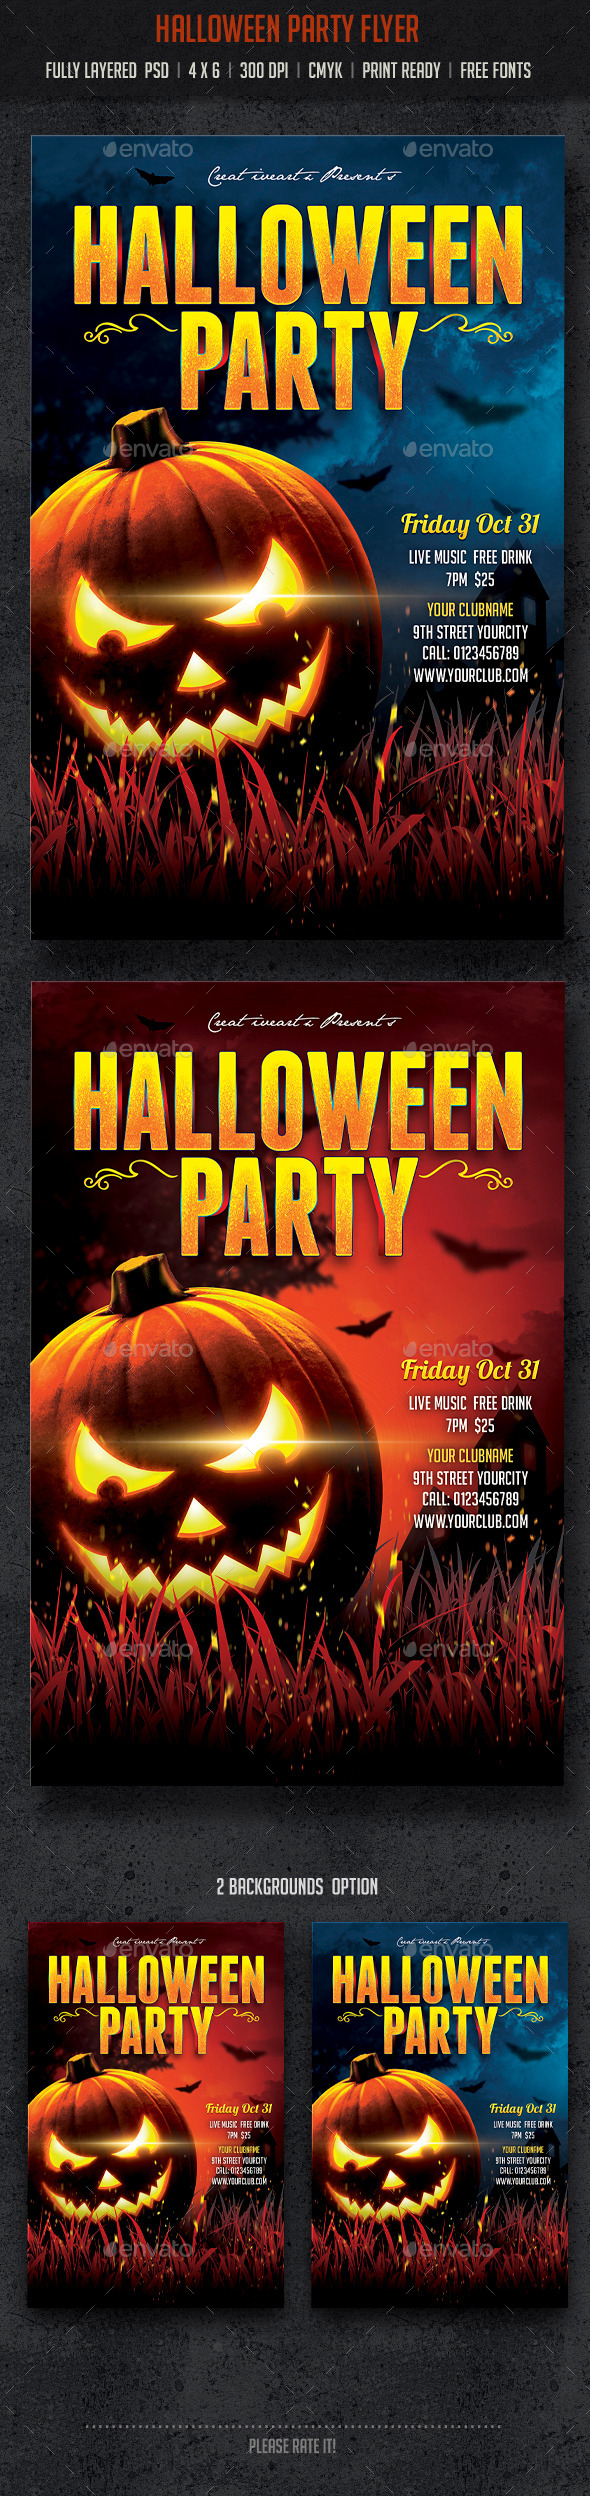 GraphicRiver Halloween Party Flyer 8960657